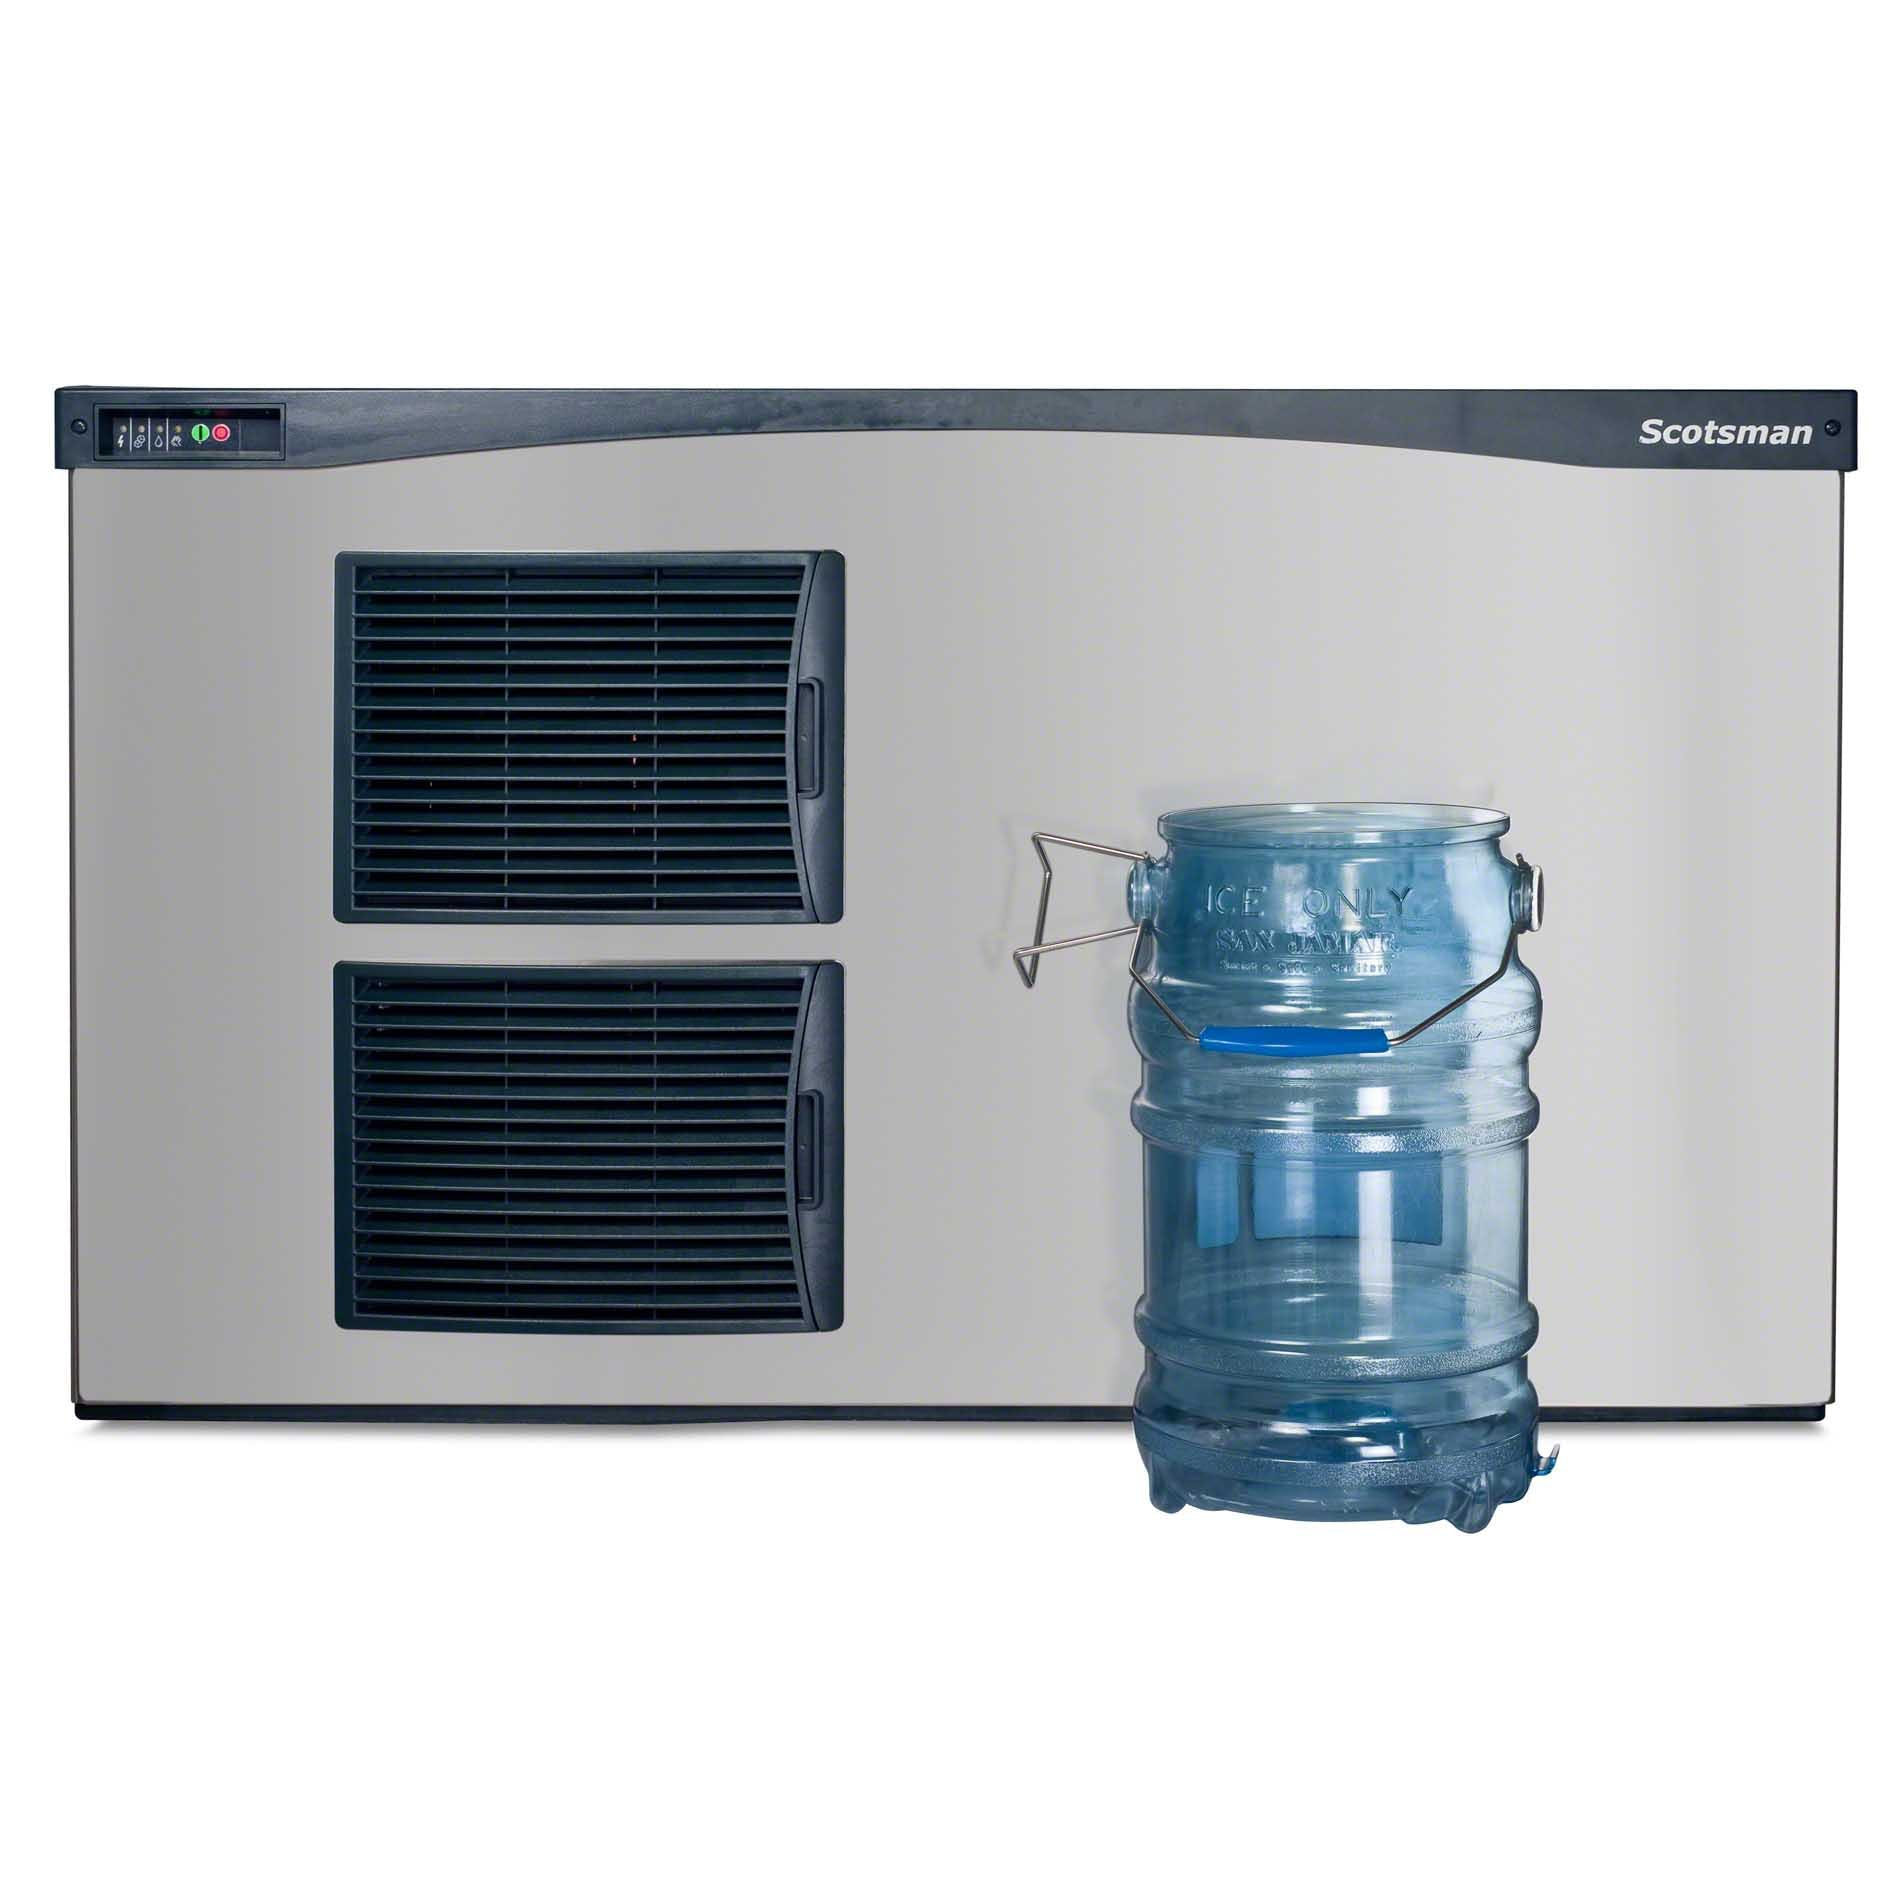 Scotsman - C1848MA-32A 1909 lb Full Size Cube Ice Machine - Prodigy Series Ice machine sold by Food Service Warehouse